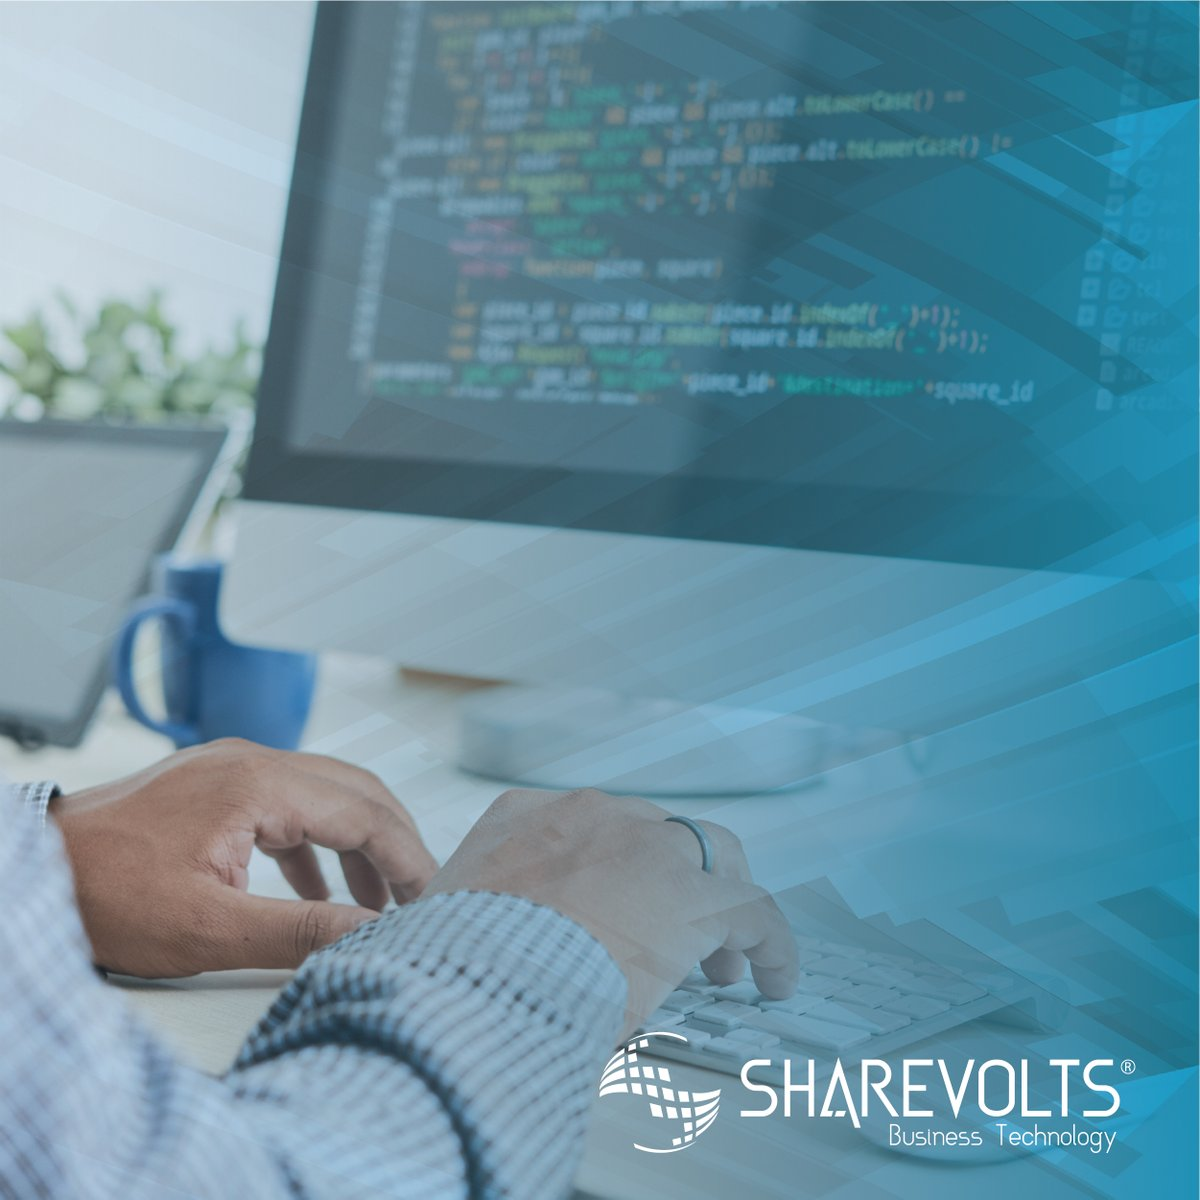 #KnowingShareVolts What is Business Technology? Check it out in our latest post  https://www.linkedin.com/feed/update/urn:li:activity:6687372682104770562…  #businesstechnology #business #technology #negocios #emprender #automatizacion #businesstechnologymanagement #tecnologynews #management #company #technologyservicespic.twitter.com/EtQntffCk7